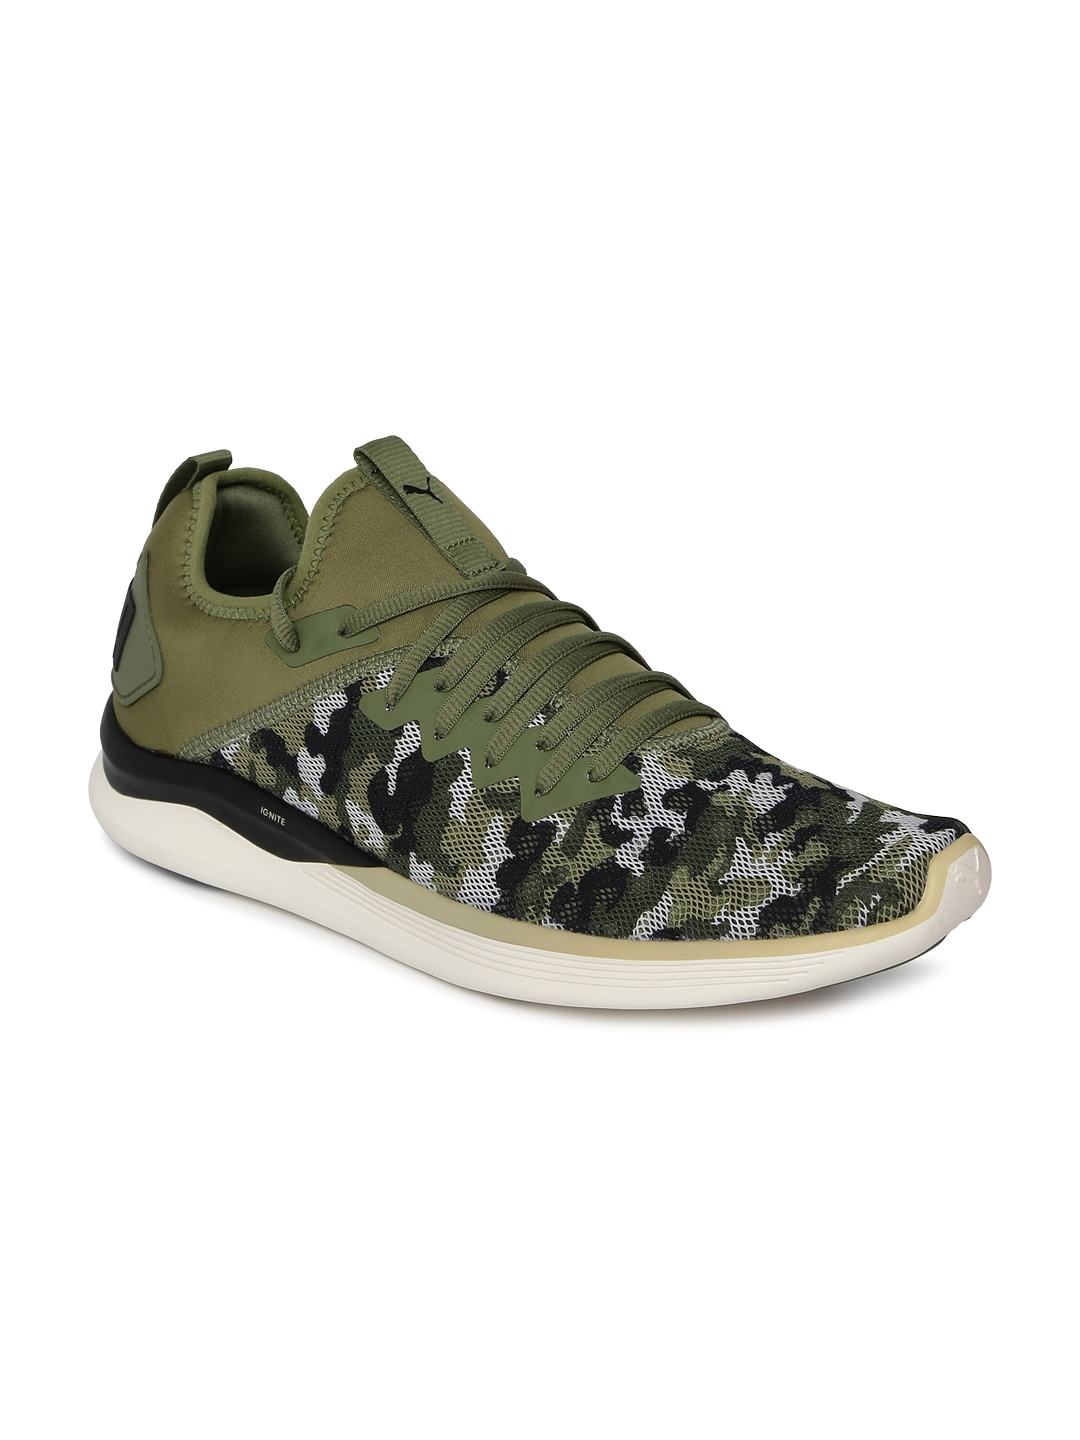 0e48d8ac2138 Puma Shoes - Buy Puma Shoes for Men   Women Online in India